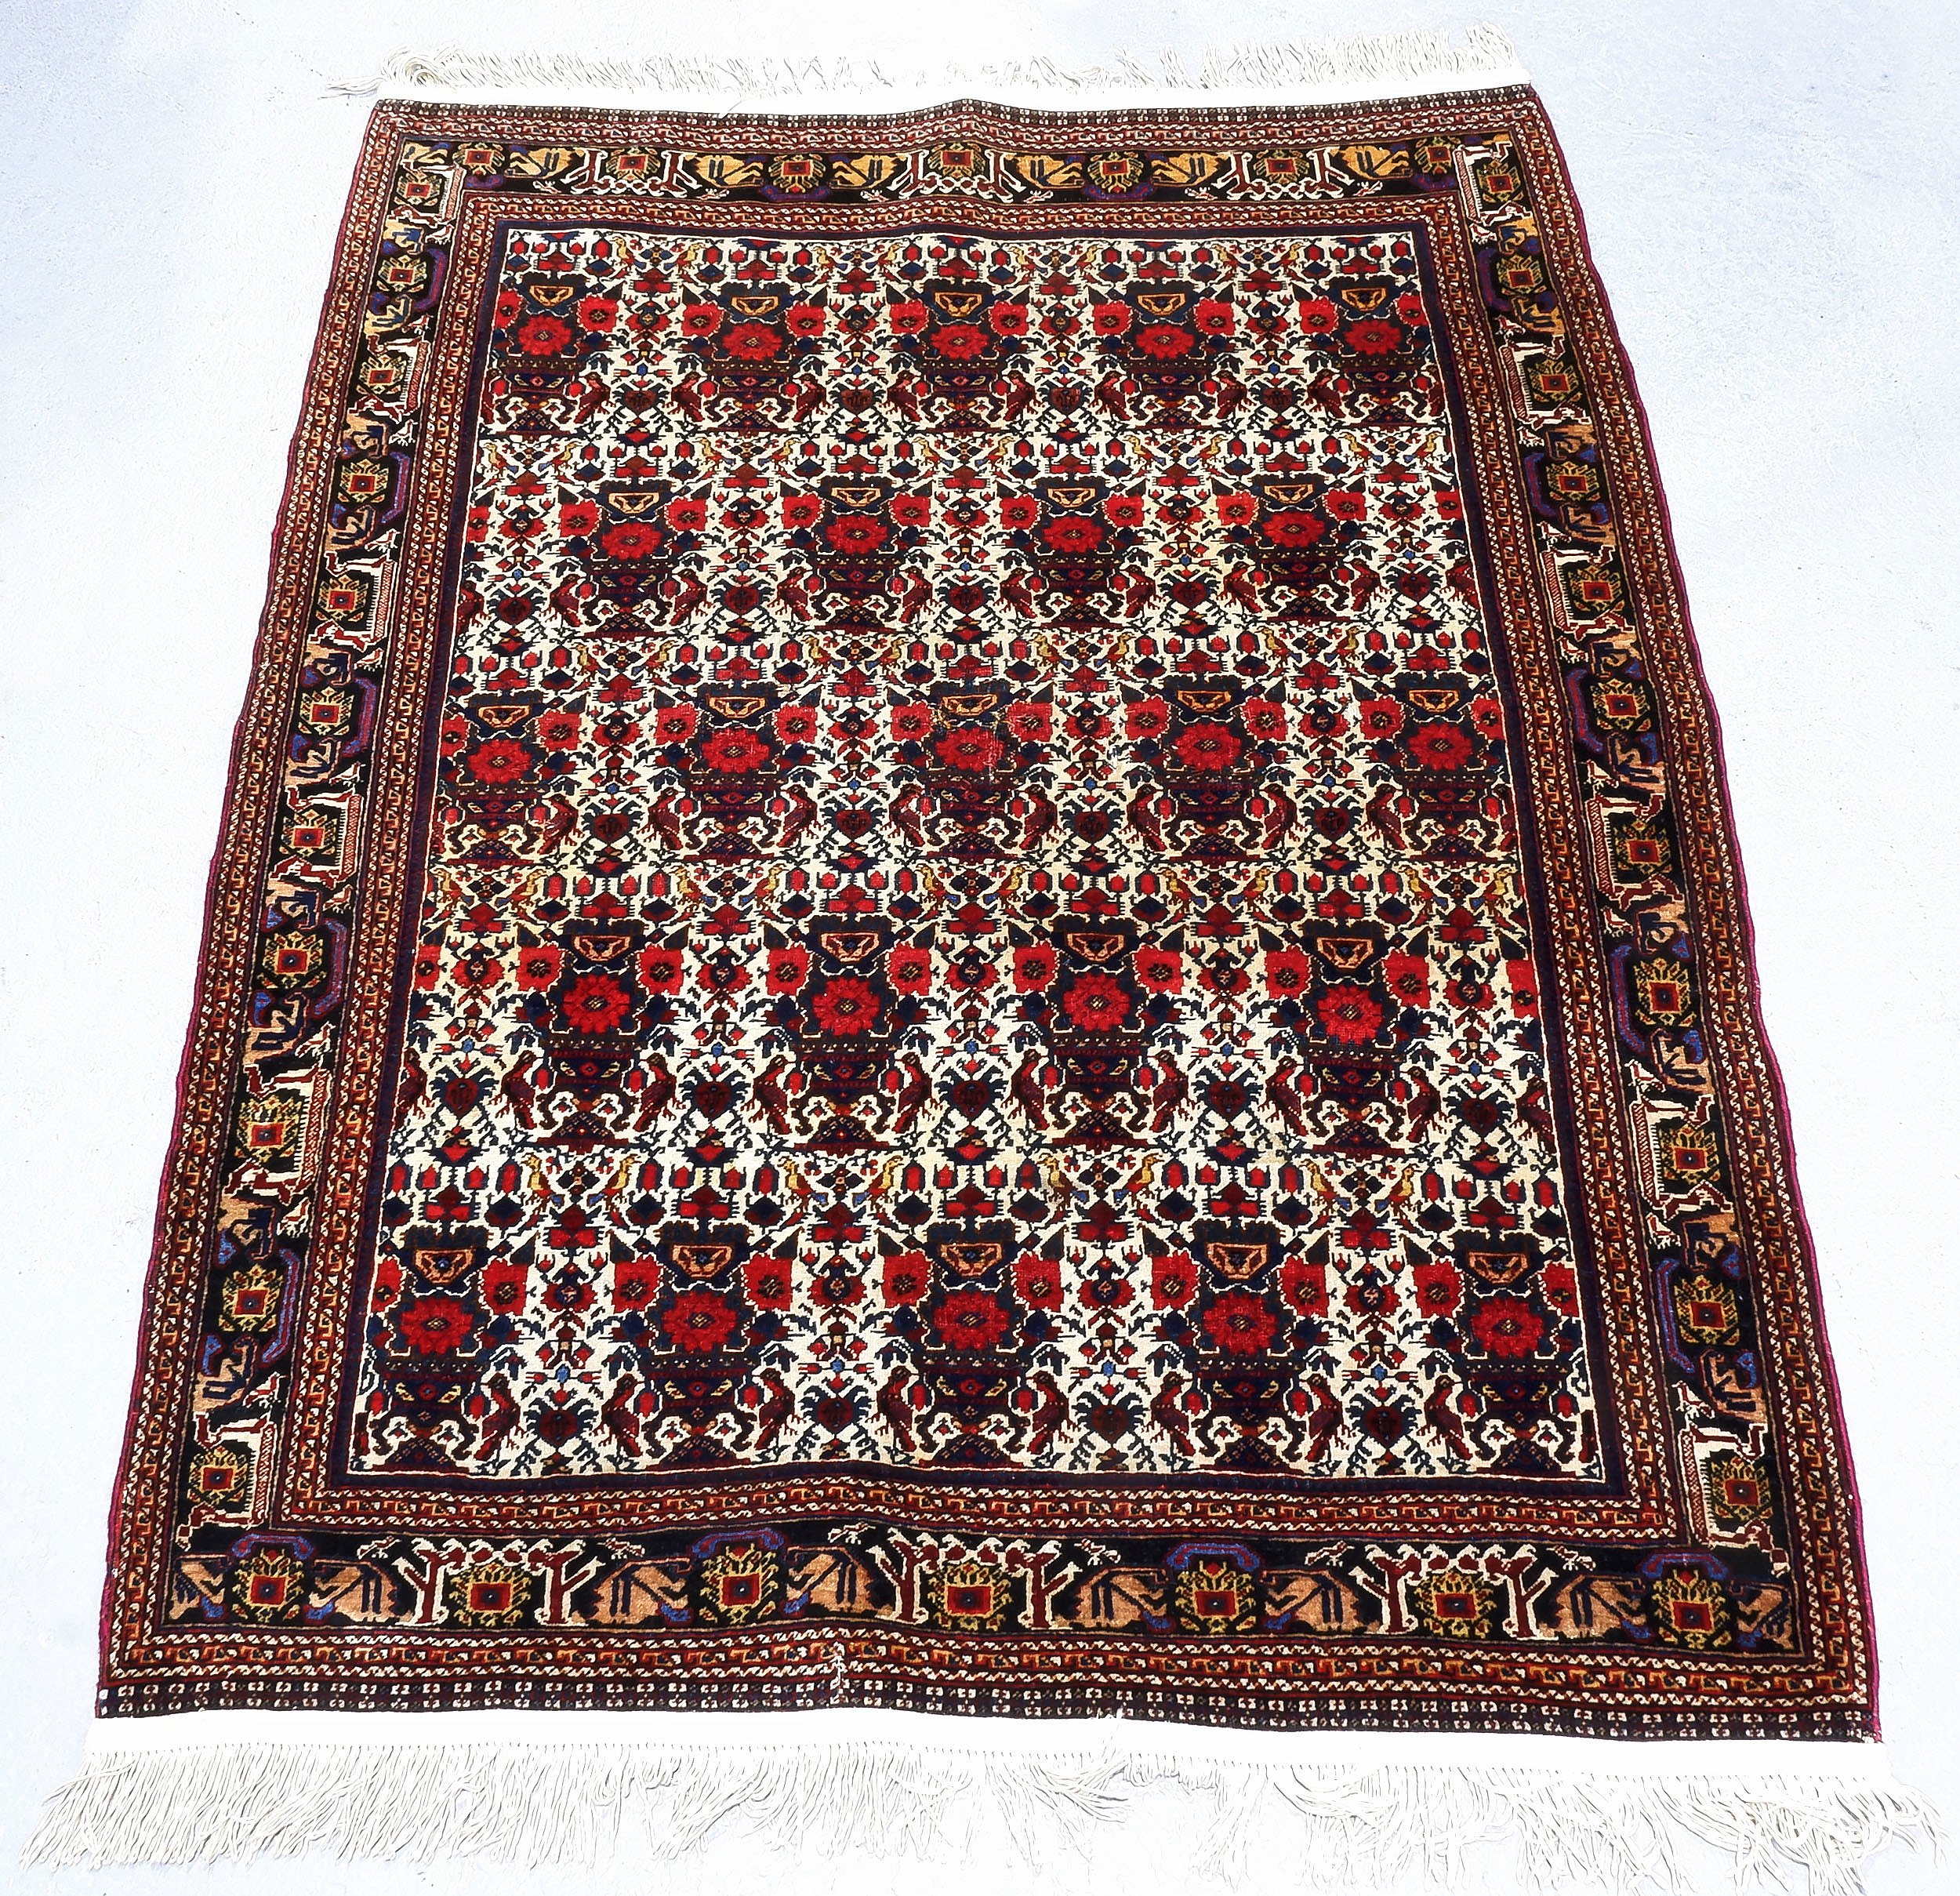 'Persian Hand Knotted Wool Pile Rug'